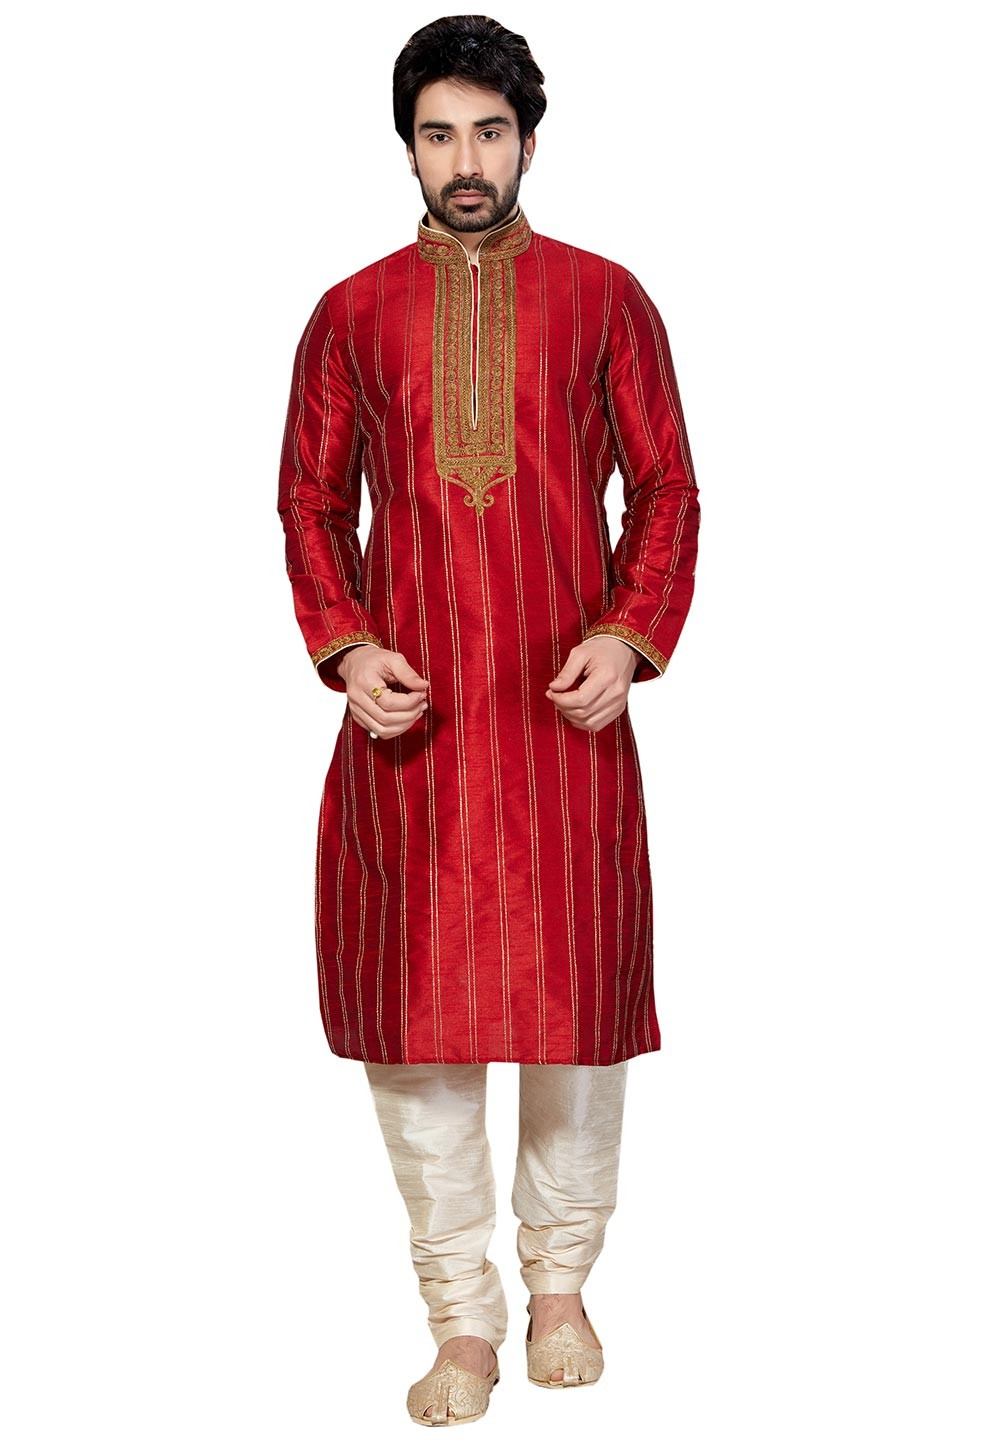 Attractive Maroon Color Dupion Silk Readymade Kurta Pajama.